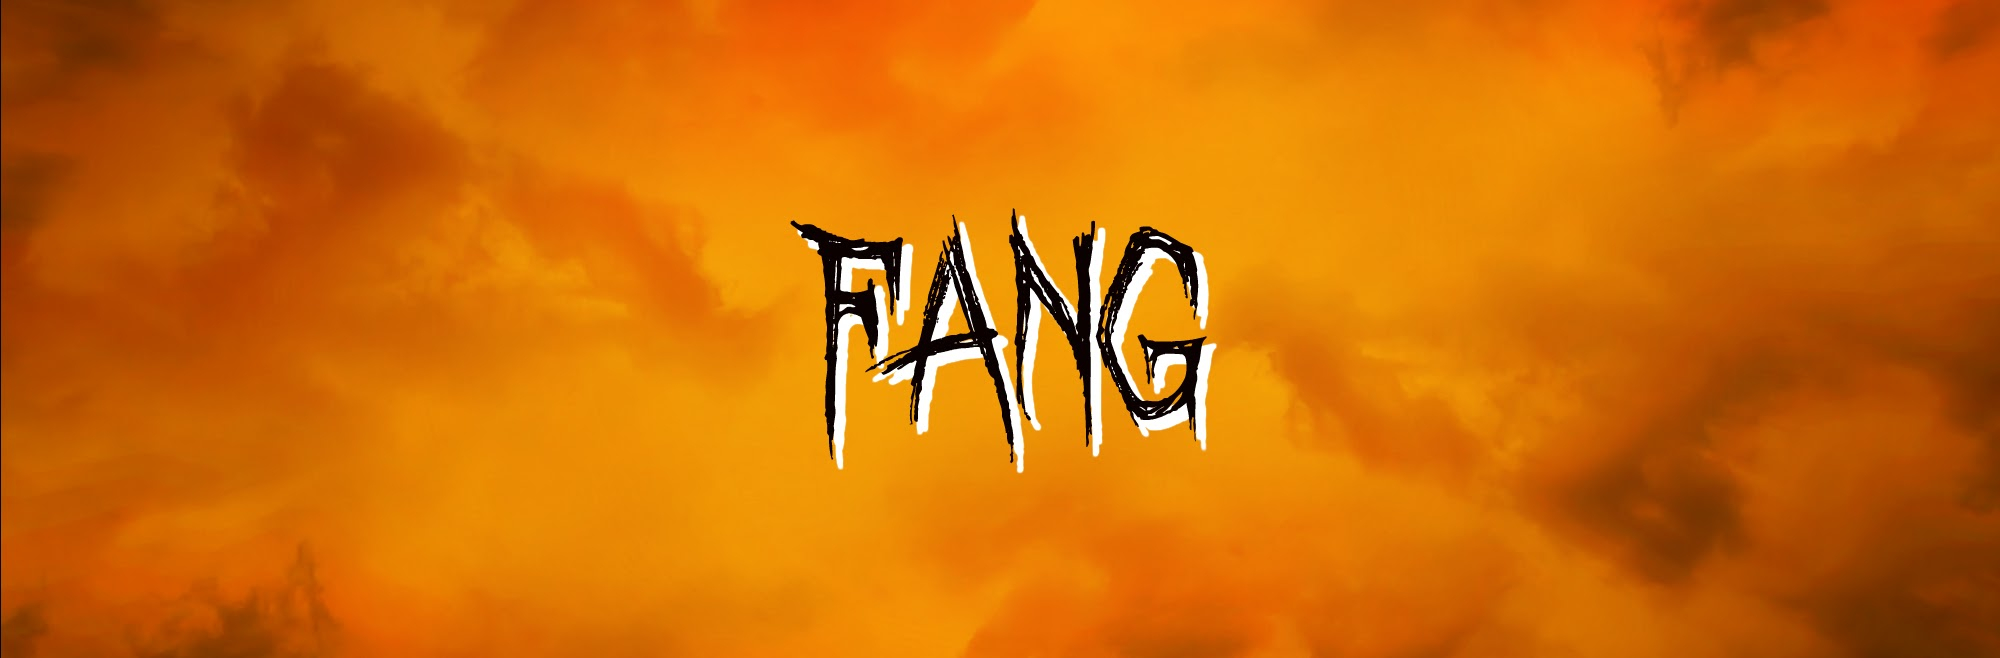 Fang button.jpg